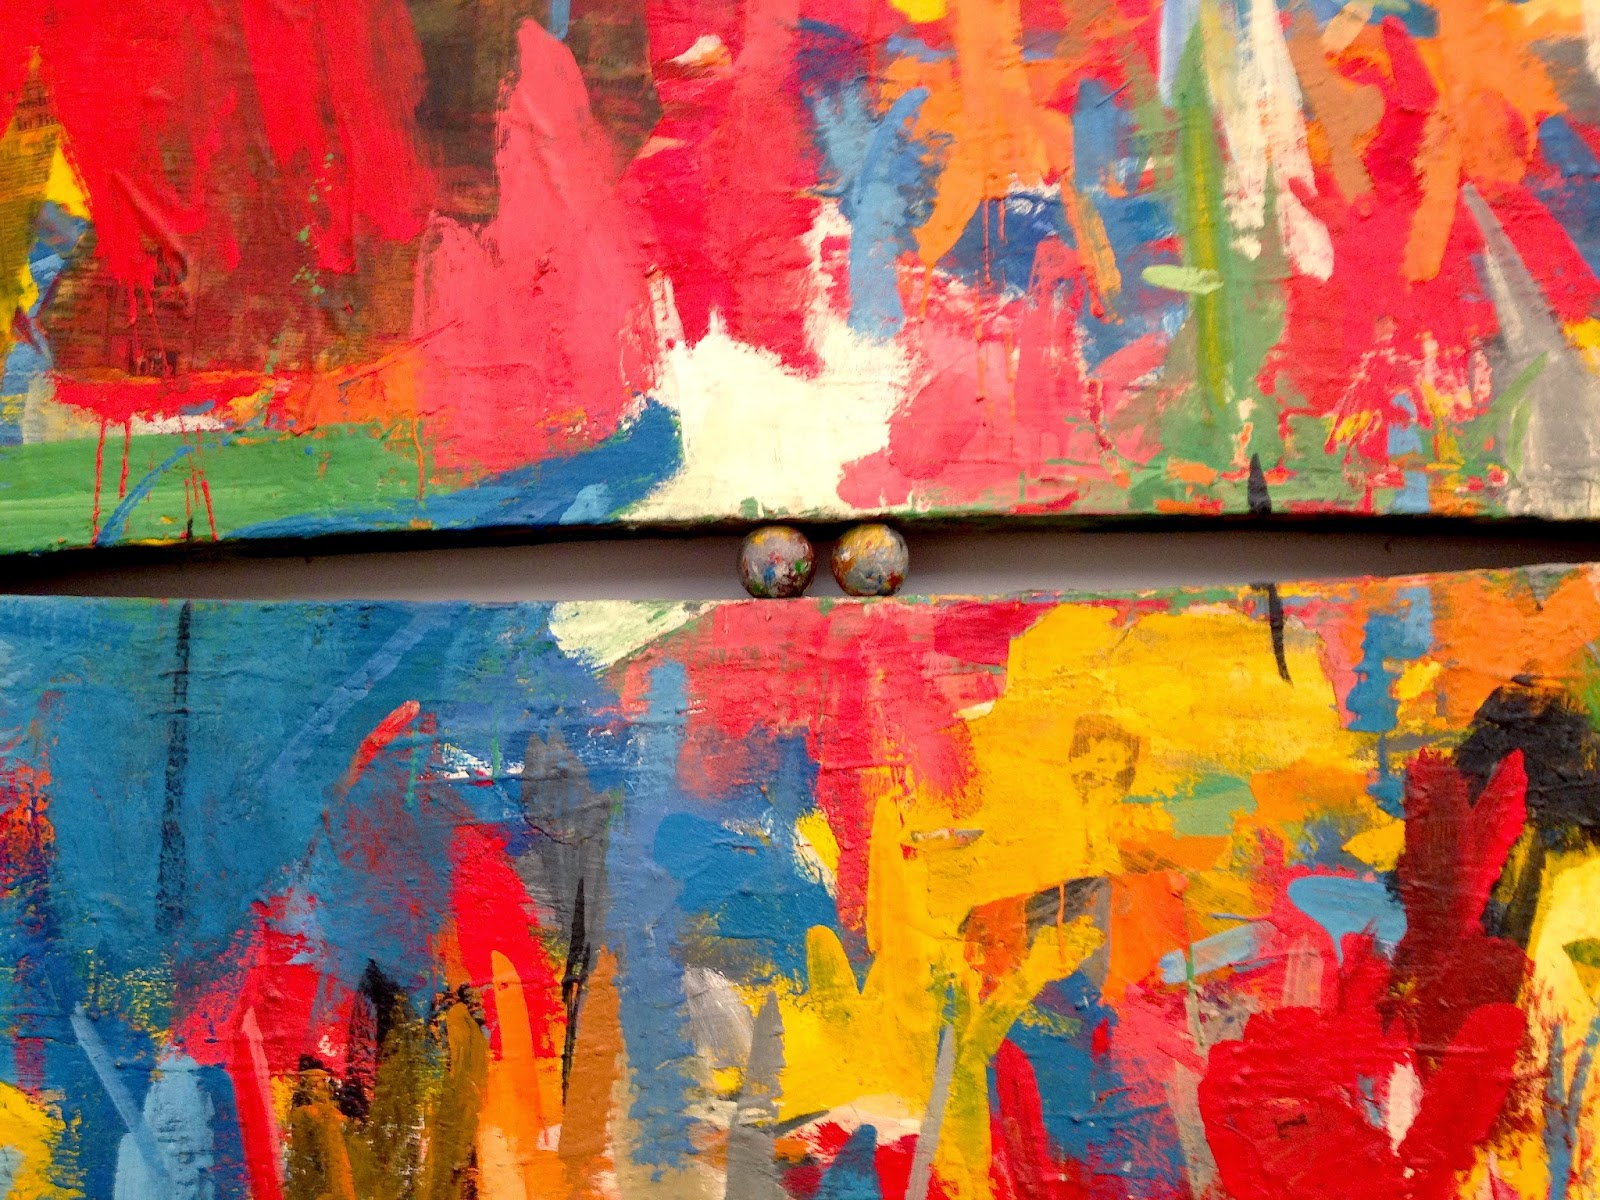 1960 jasper johns painting with two balls